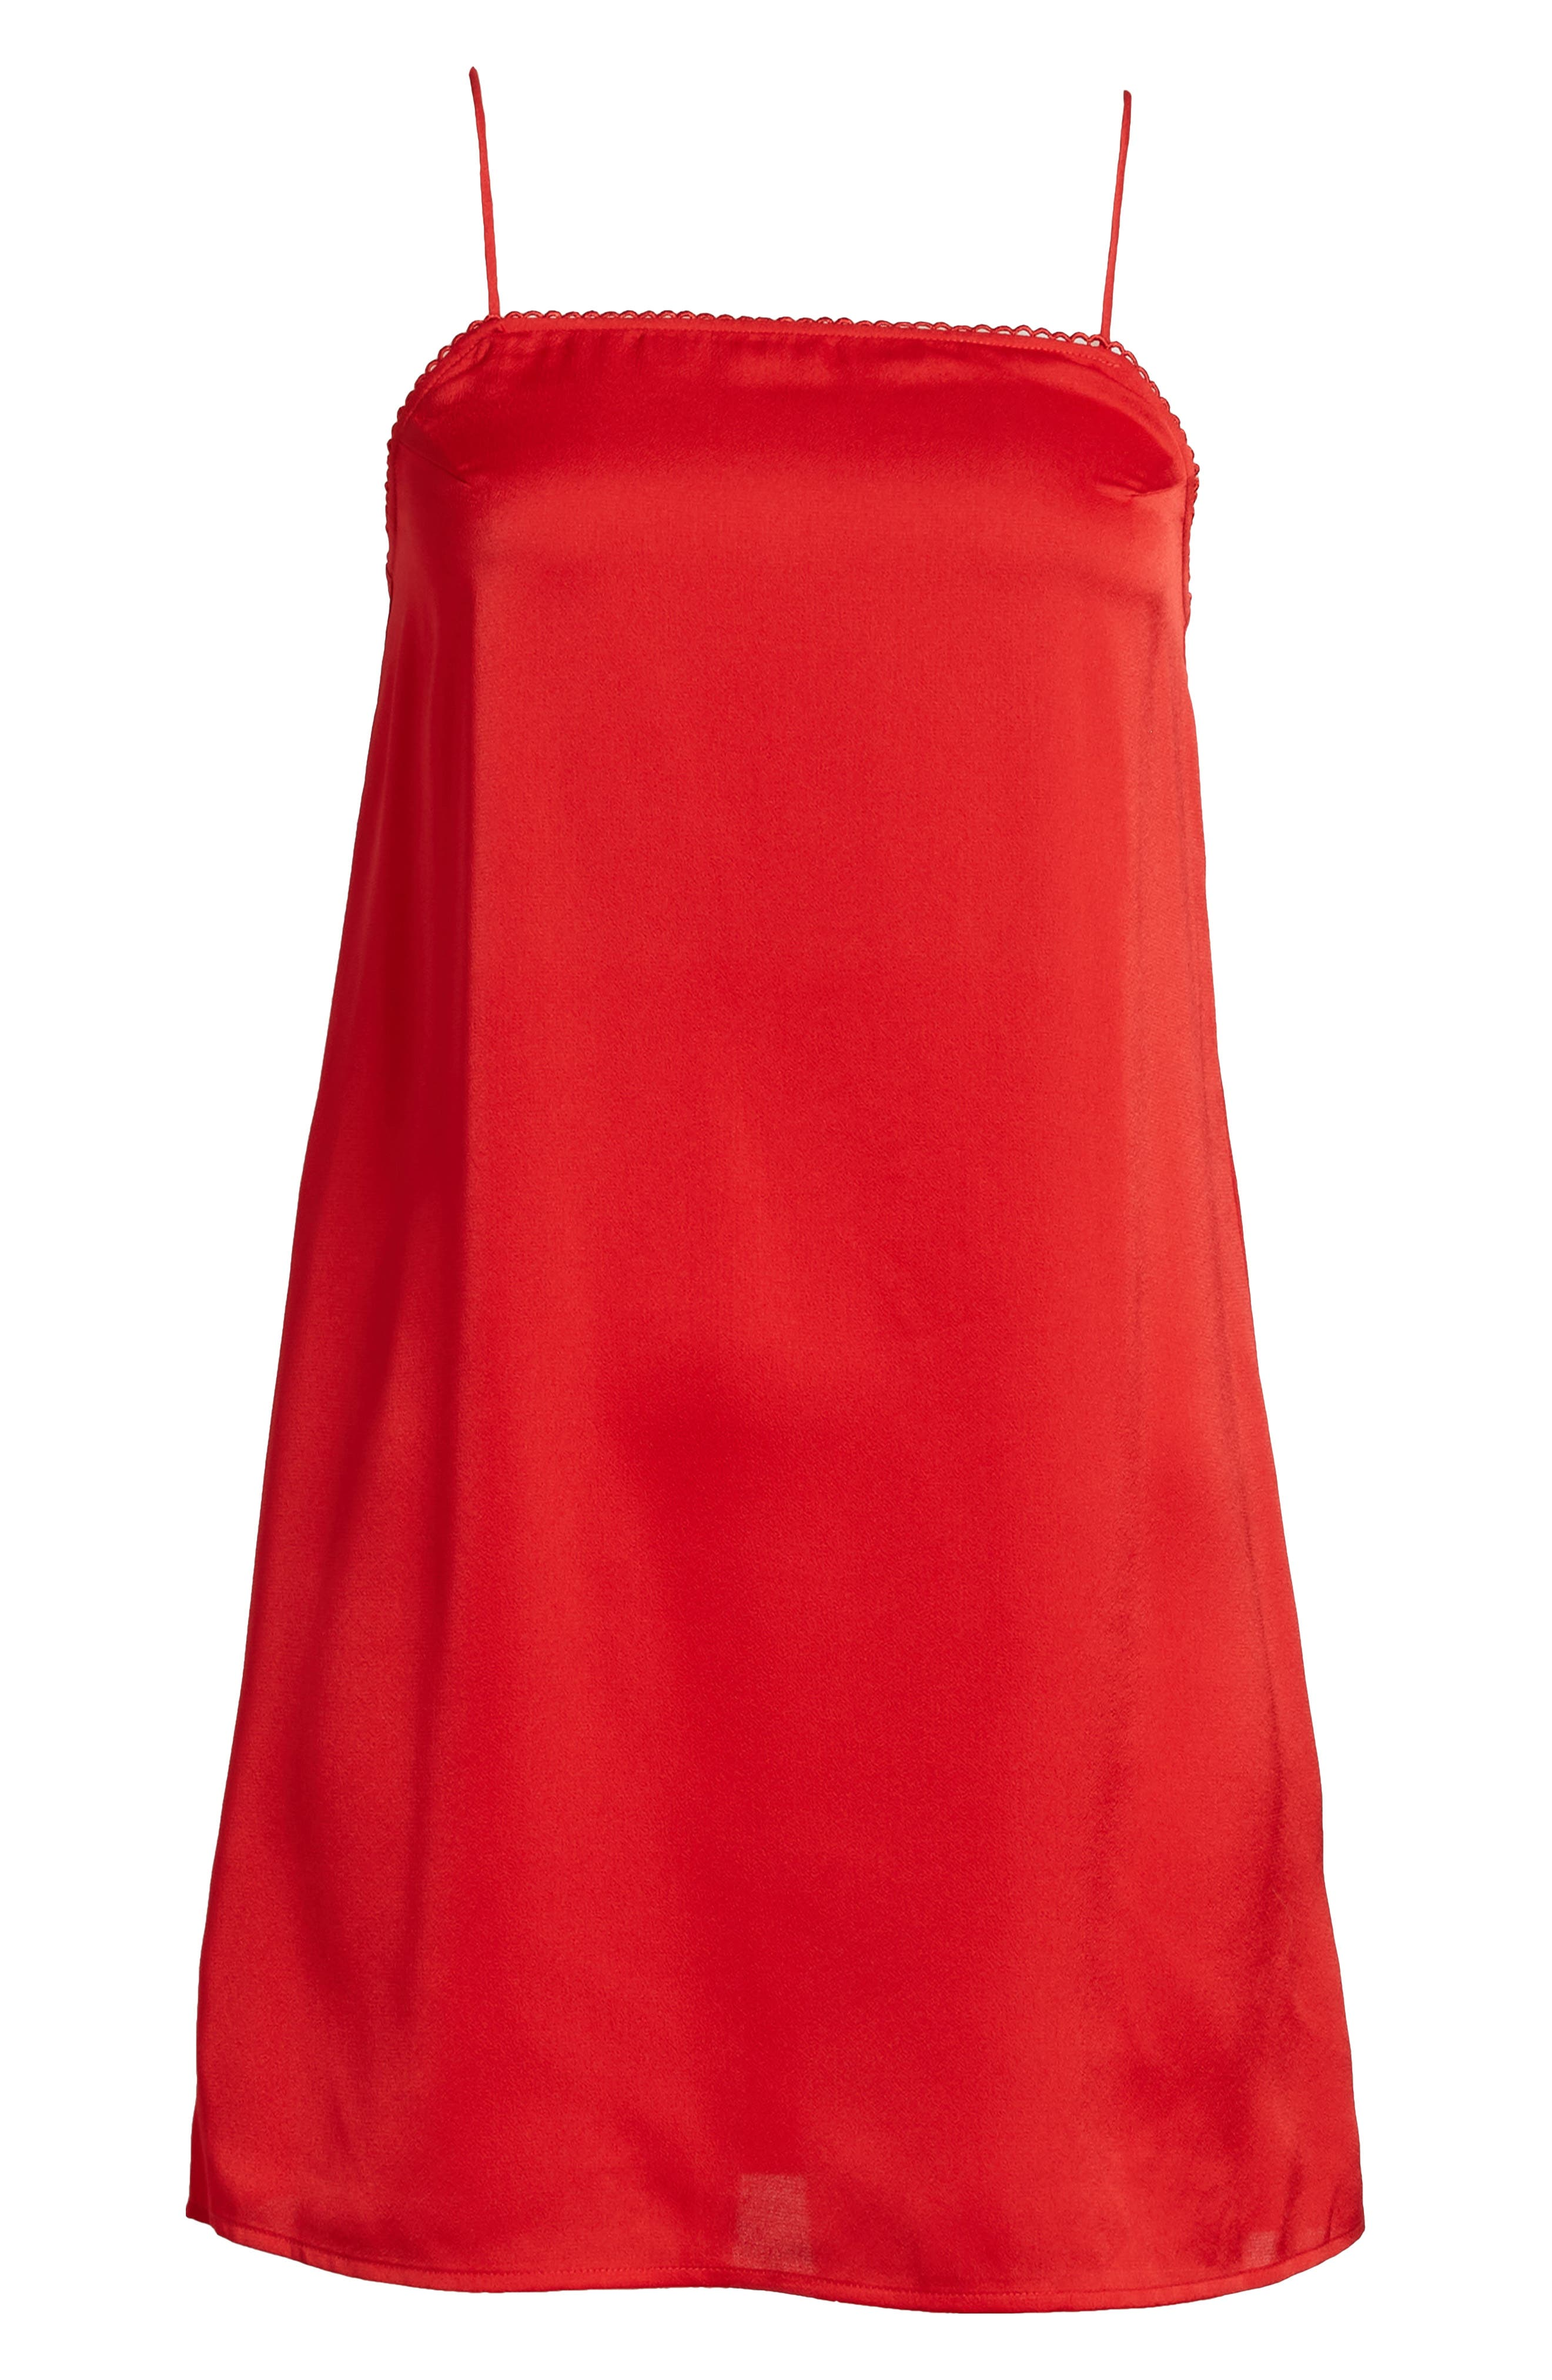 Moonlit Strappy Satin Swing Dress,                             Alternate thumbnail 7, color,                             Red